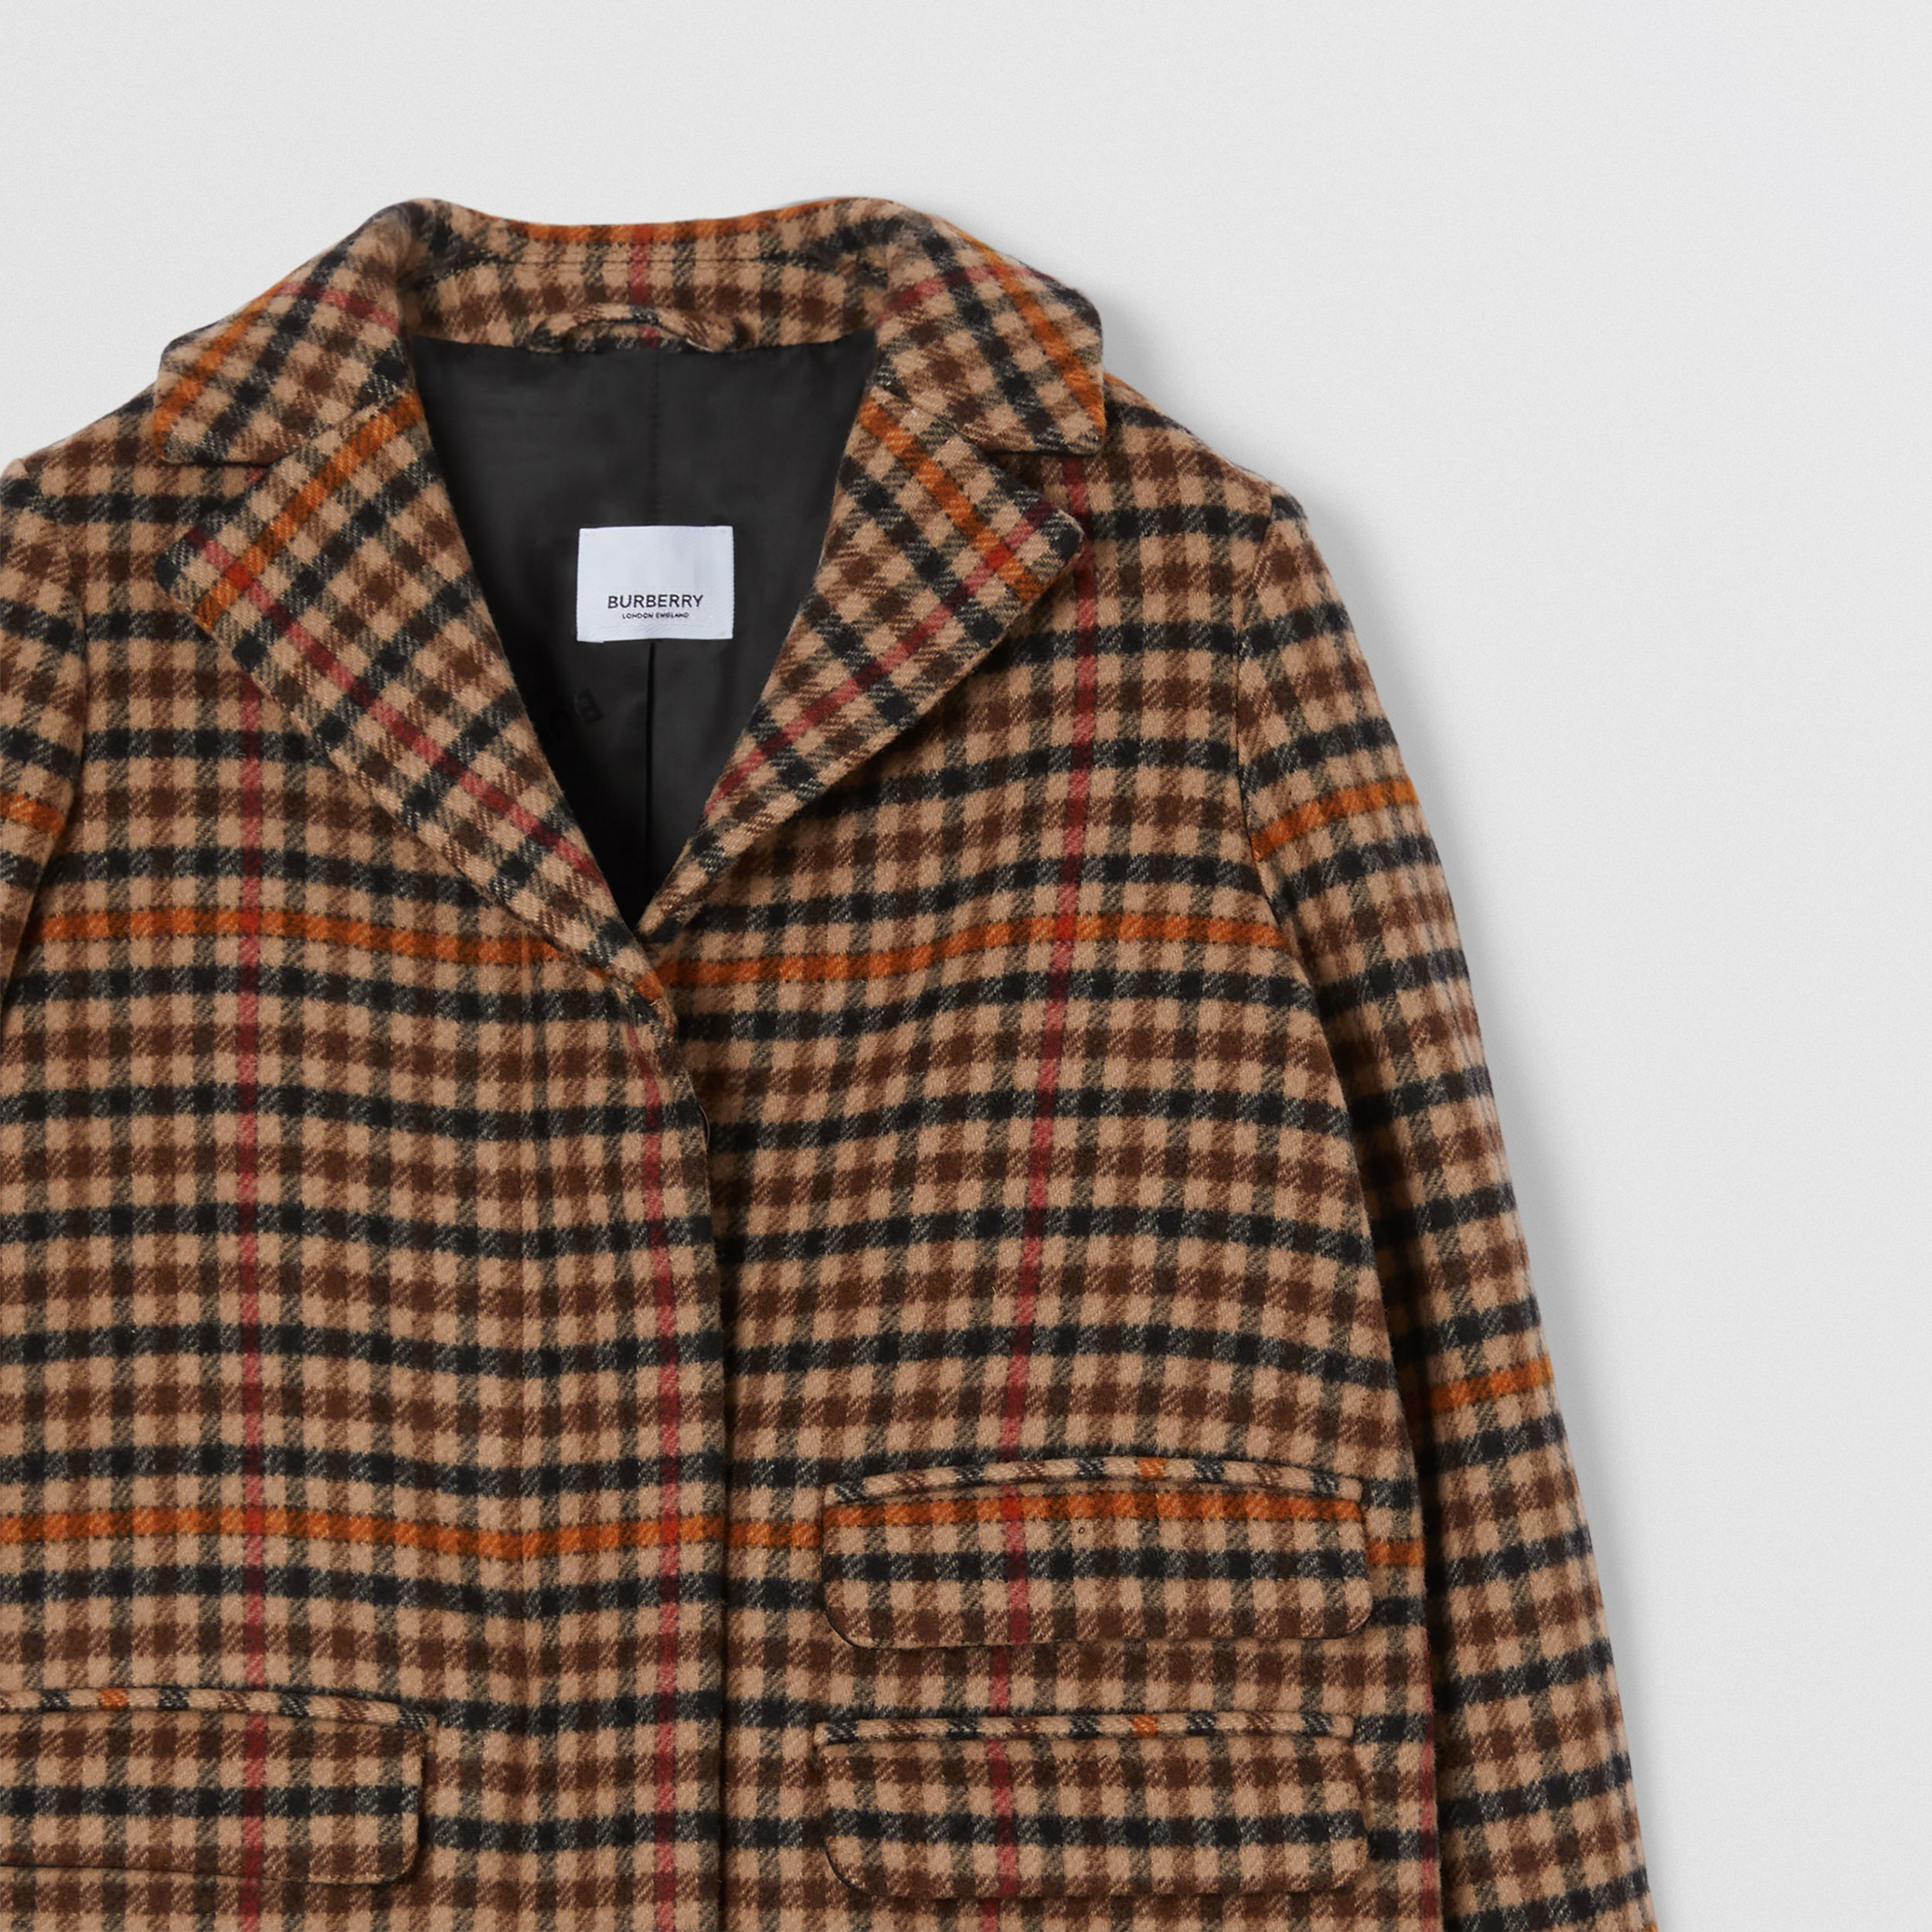 Embroidered Monogram Motif Check Wool Tailored Coat in Camel | Burberry Hong Kong S.A.R. - 4